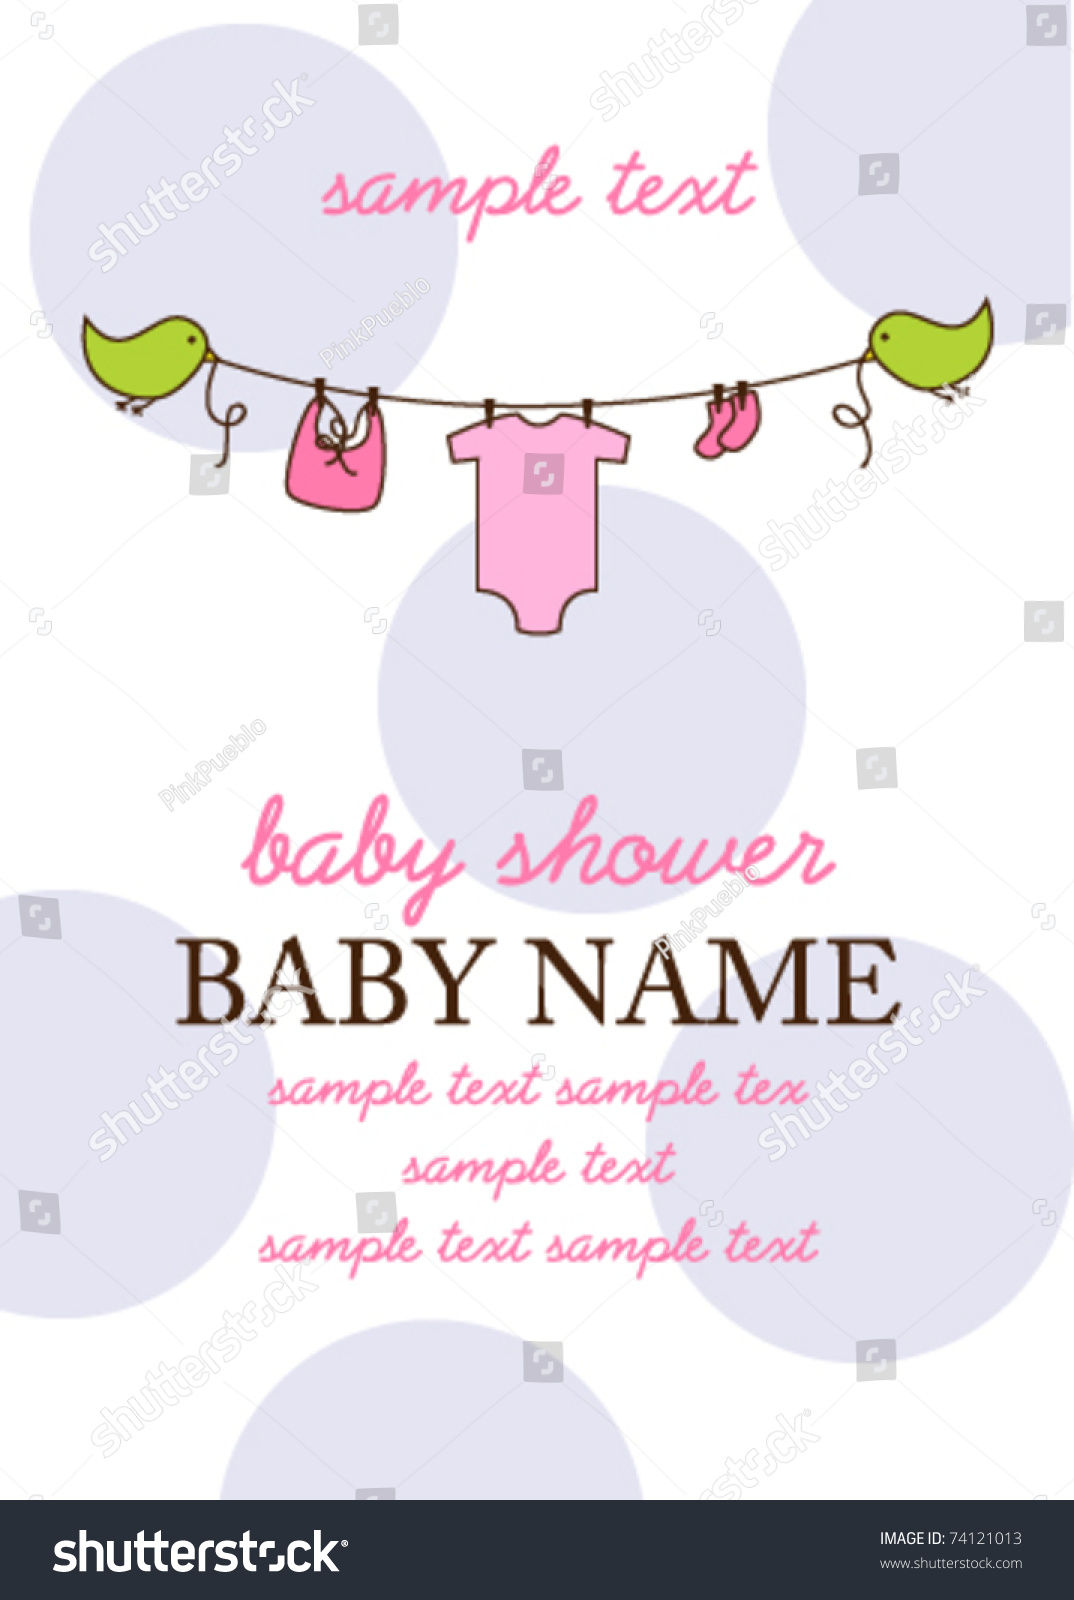 Baby Shower Invitation Template Flying Birds Stock Vector 74121013 ...